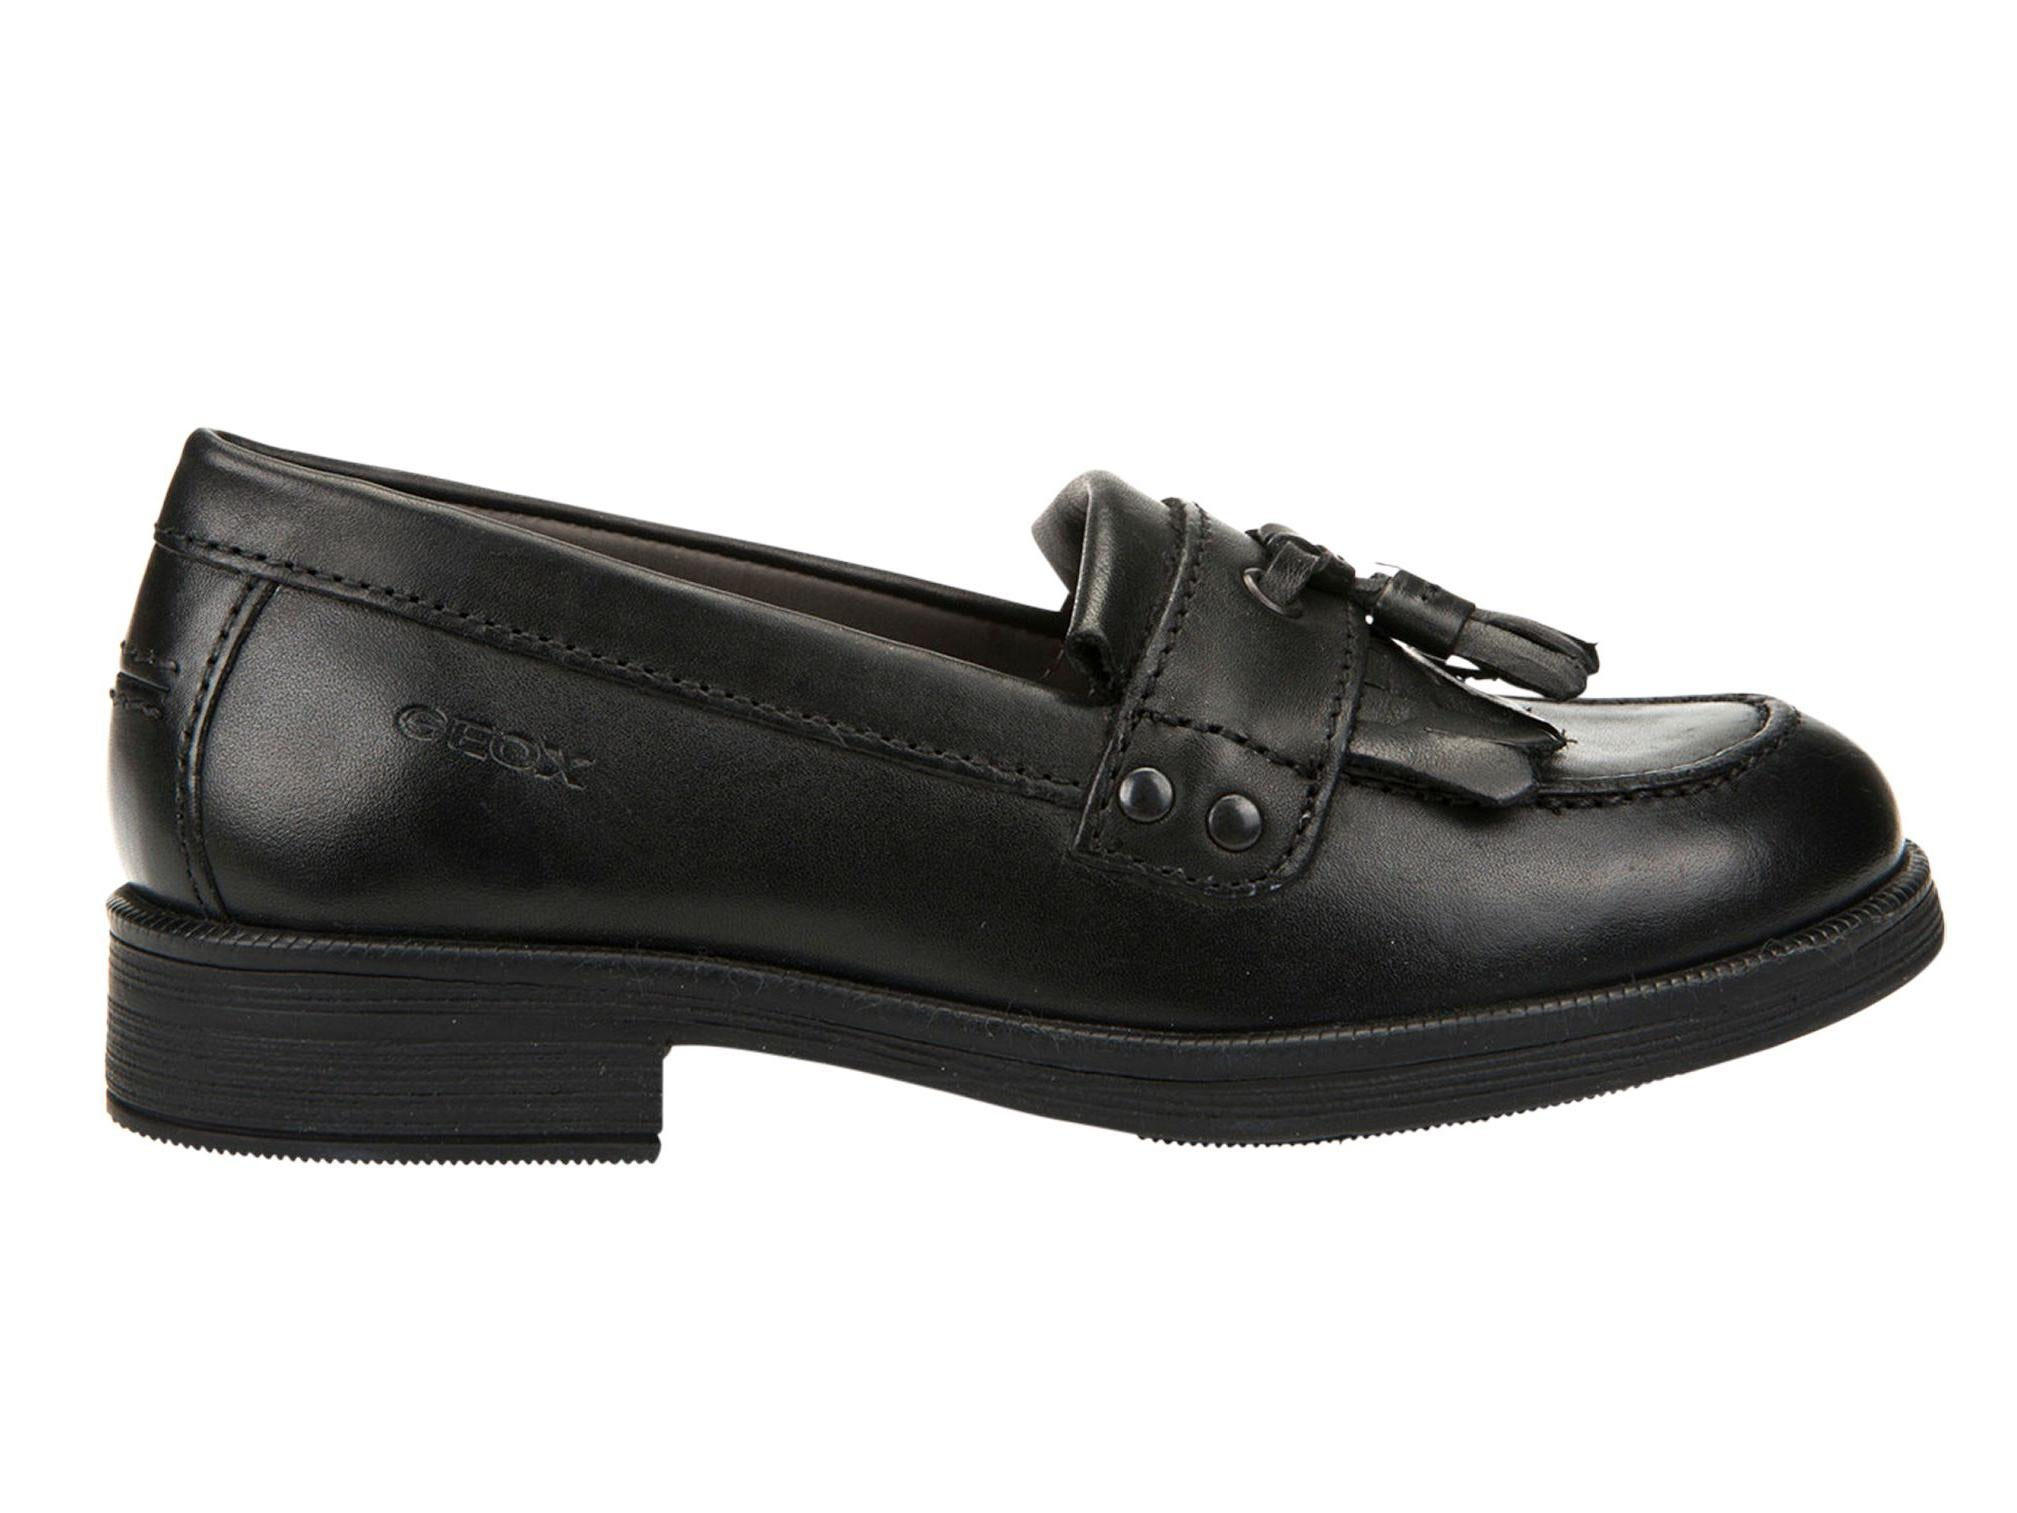 Geox Children s Agata Tassel Leather Loafers  From £50 0949618c762